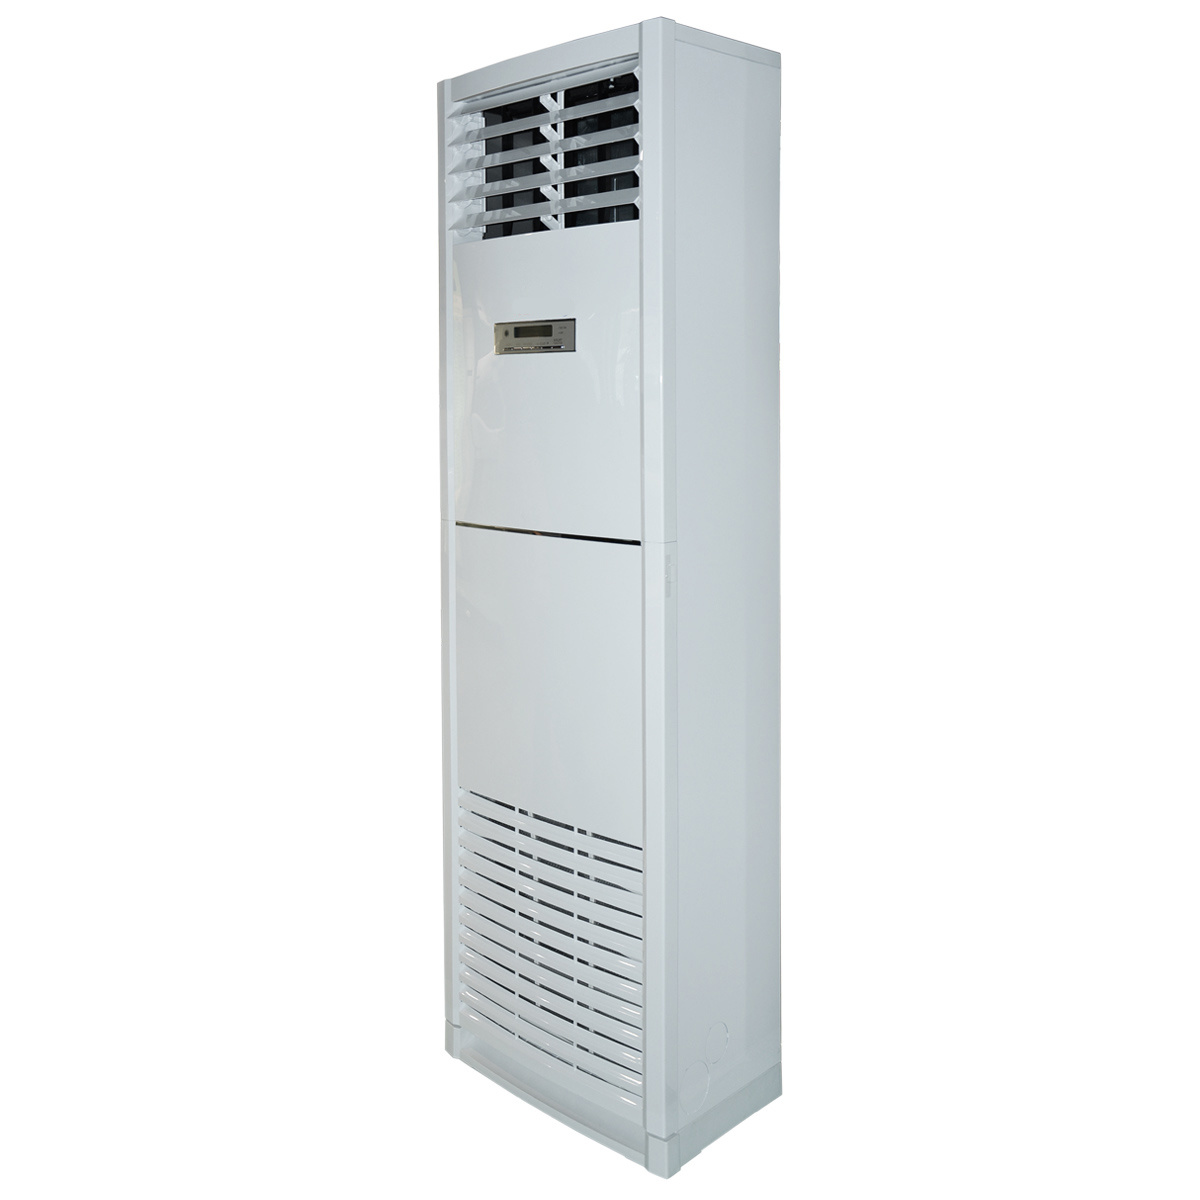 #596A72 A Window Air Conditioner That Consumes Buckeyebride.com Best 2933 Floor Standing Ac Unit photos with 1200x1200 px on helpvideos.info - Air Conditioners, Air Coolers and more